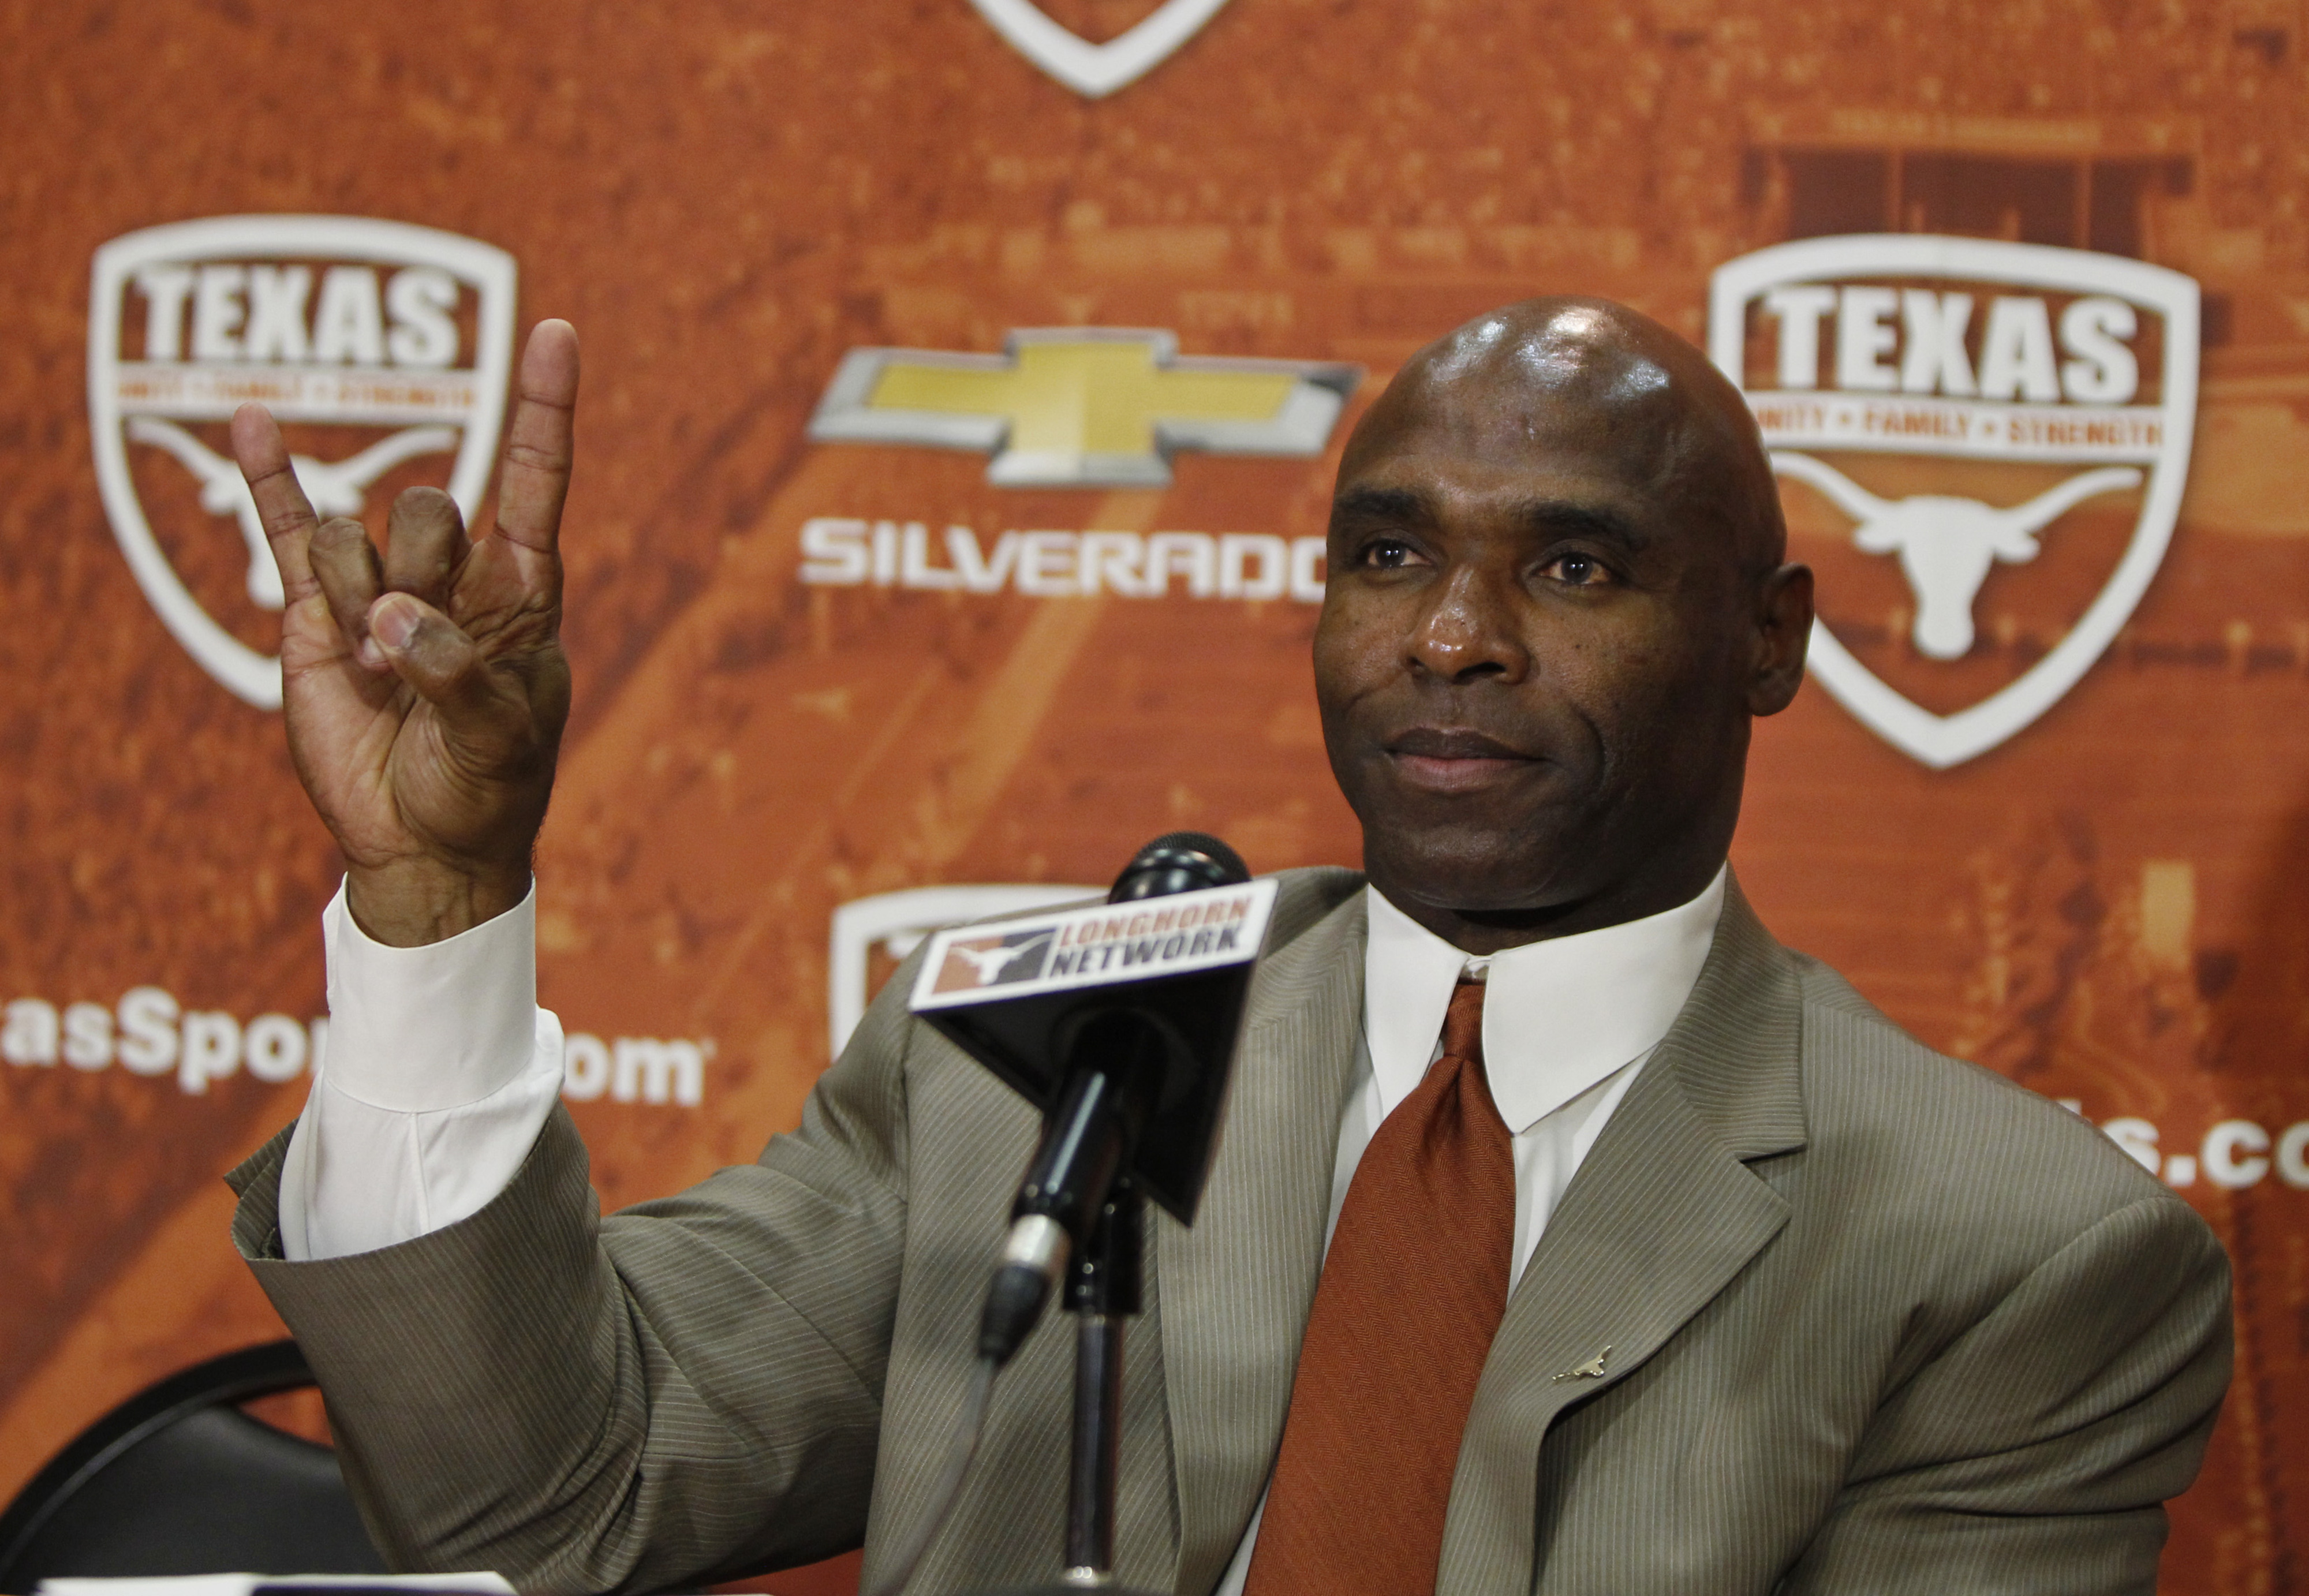 Charlie Strong has dipped into Starkville and taken away 5-year OC Les Koenning to coach WRs at Texas